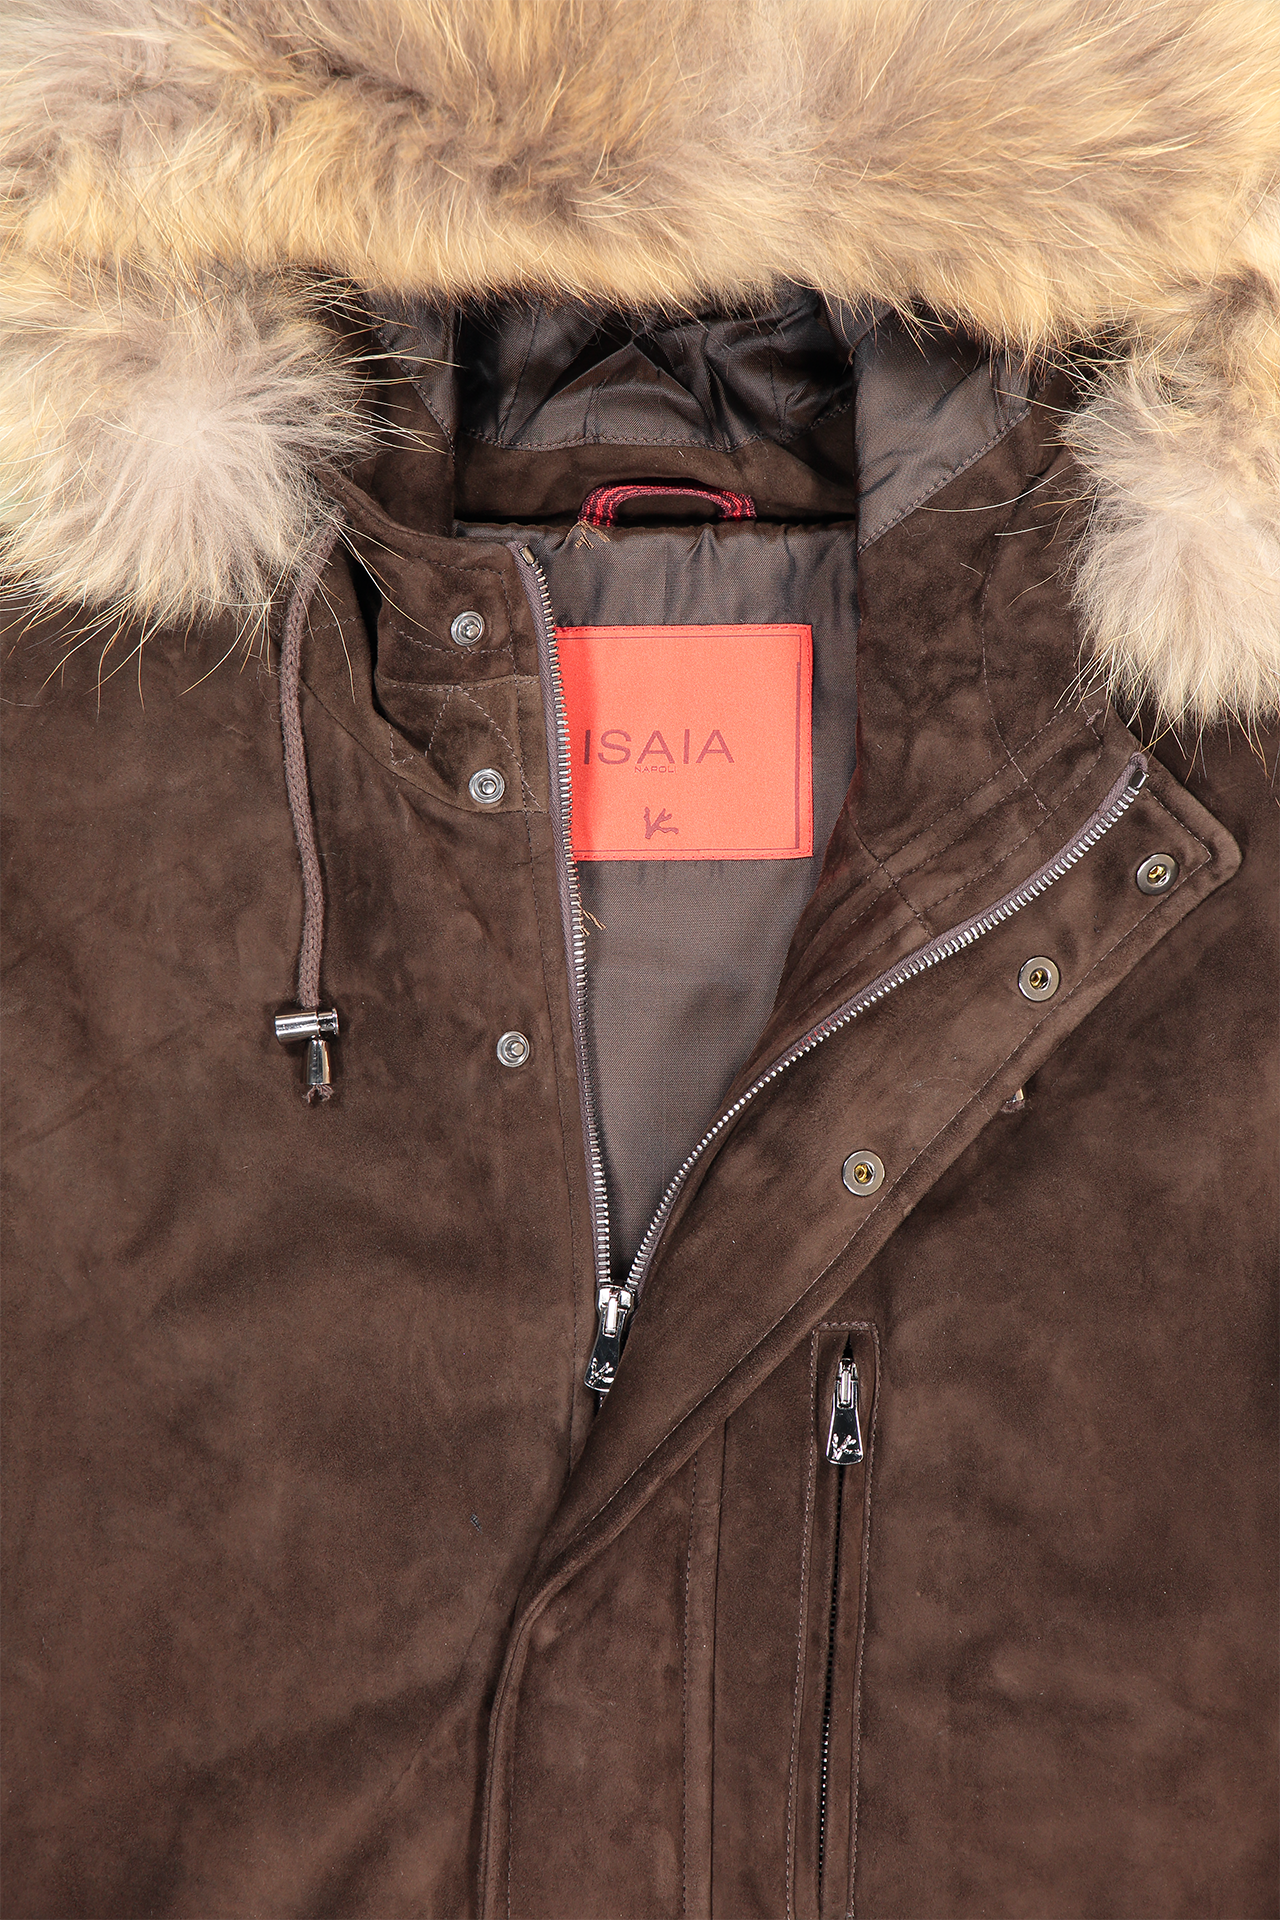 Collar detail image of Isaia Crown Aqua Suede Parka